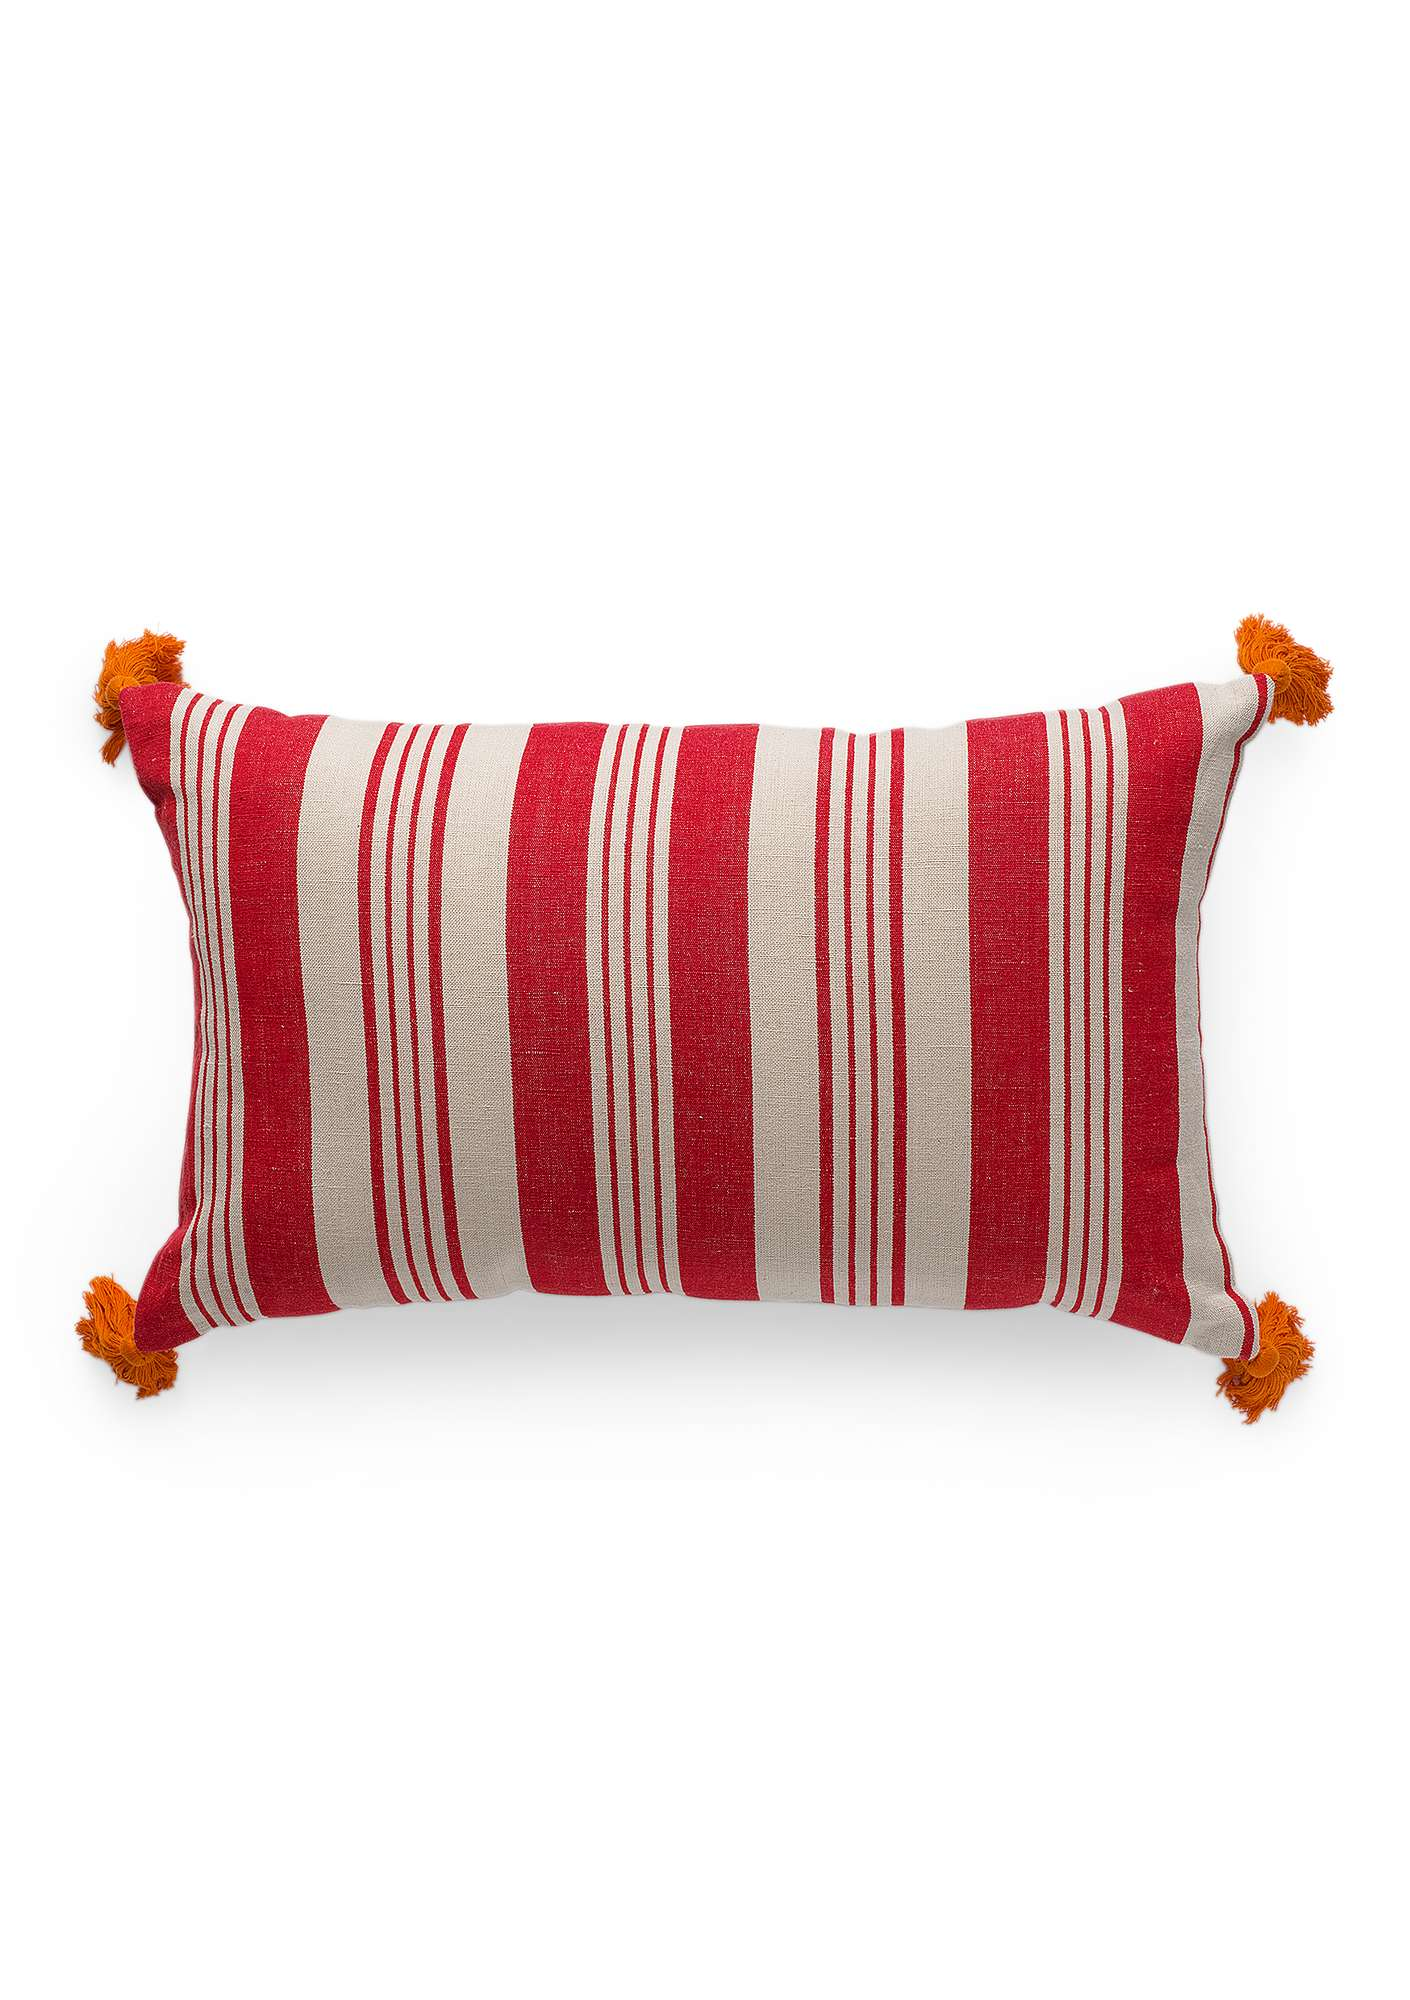 Kissen Bolster bright red